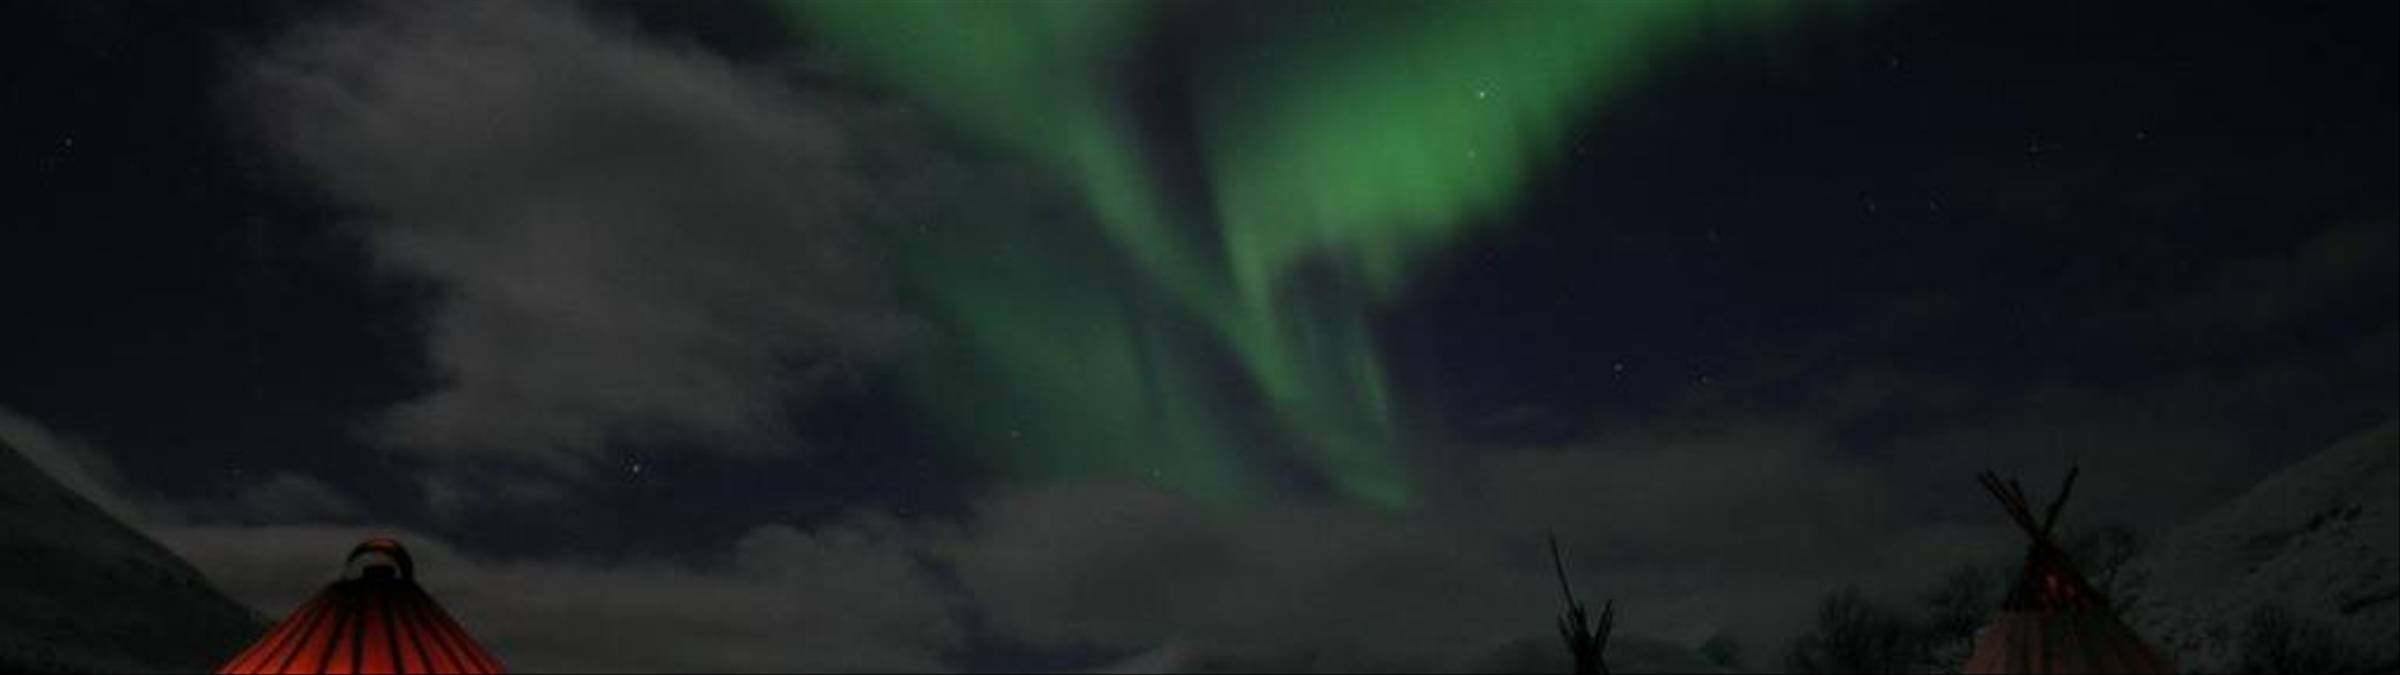 Tromso Northern Lights in Norway (1).JPG